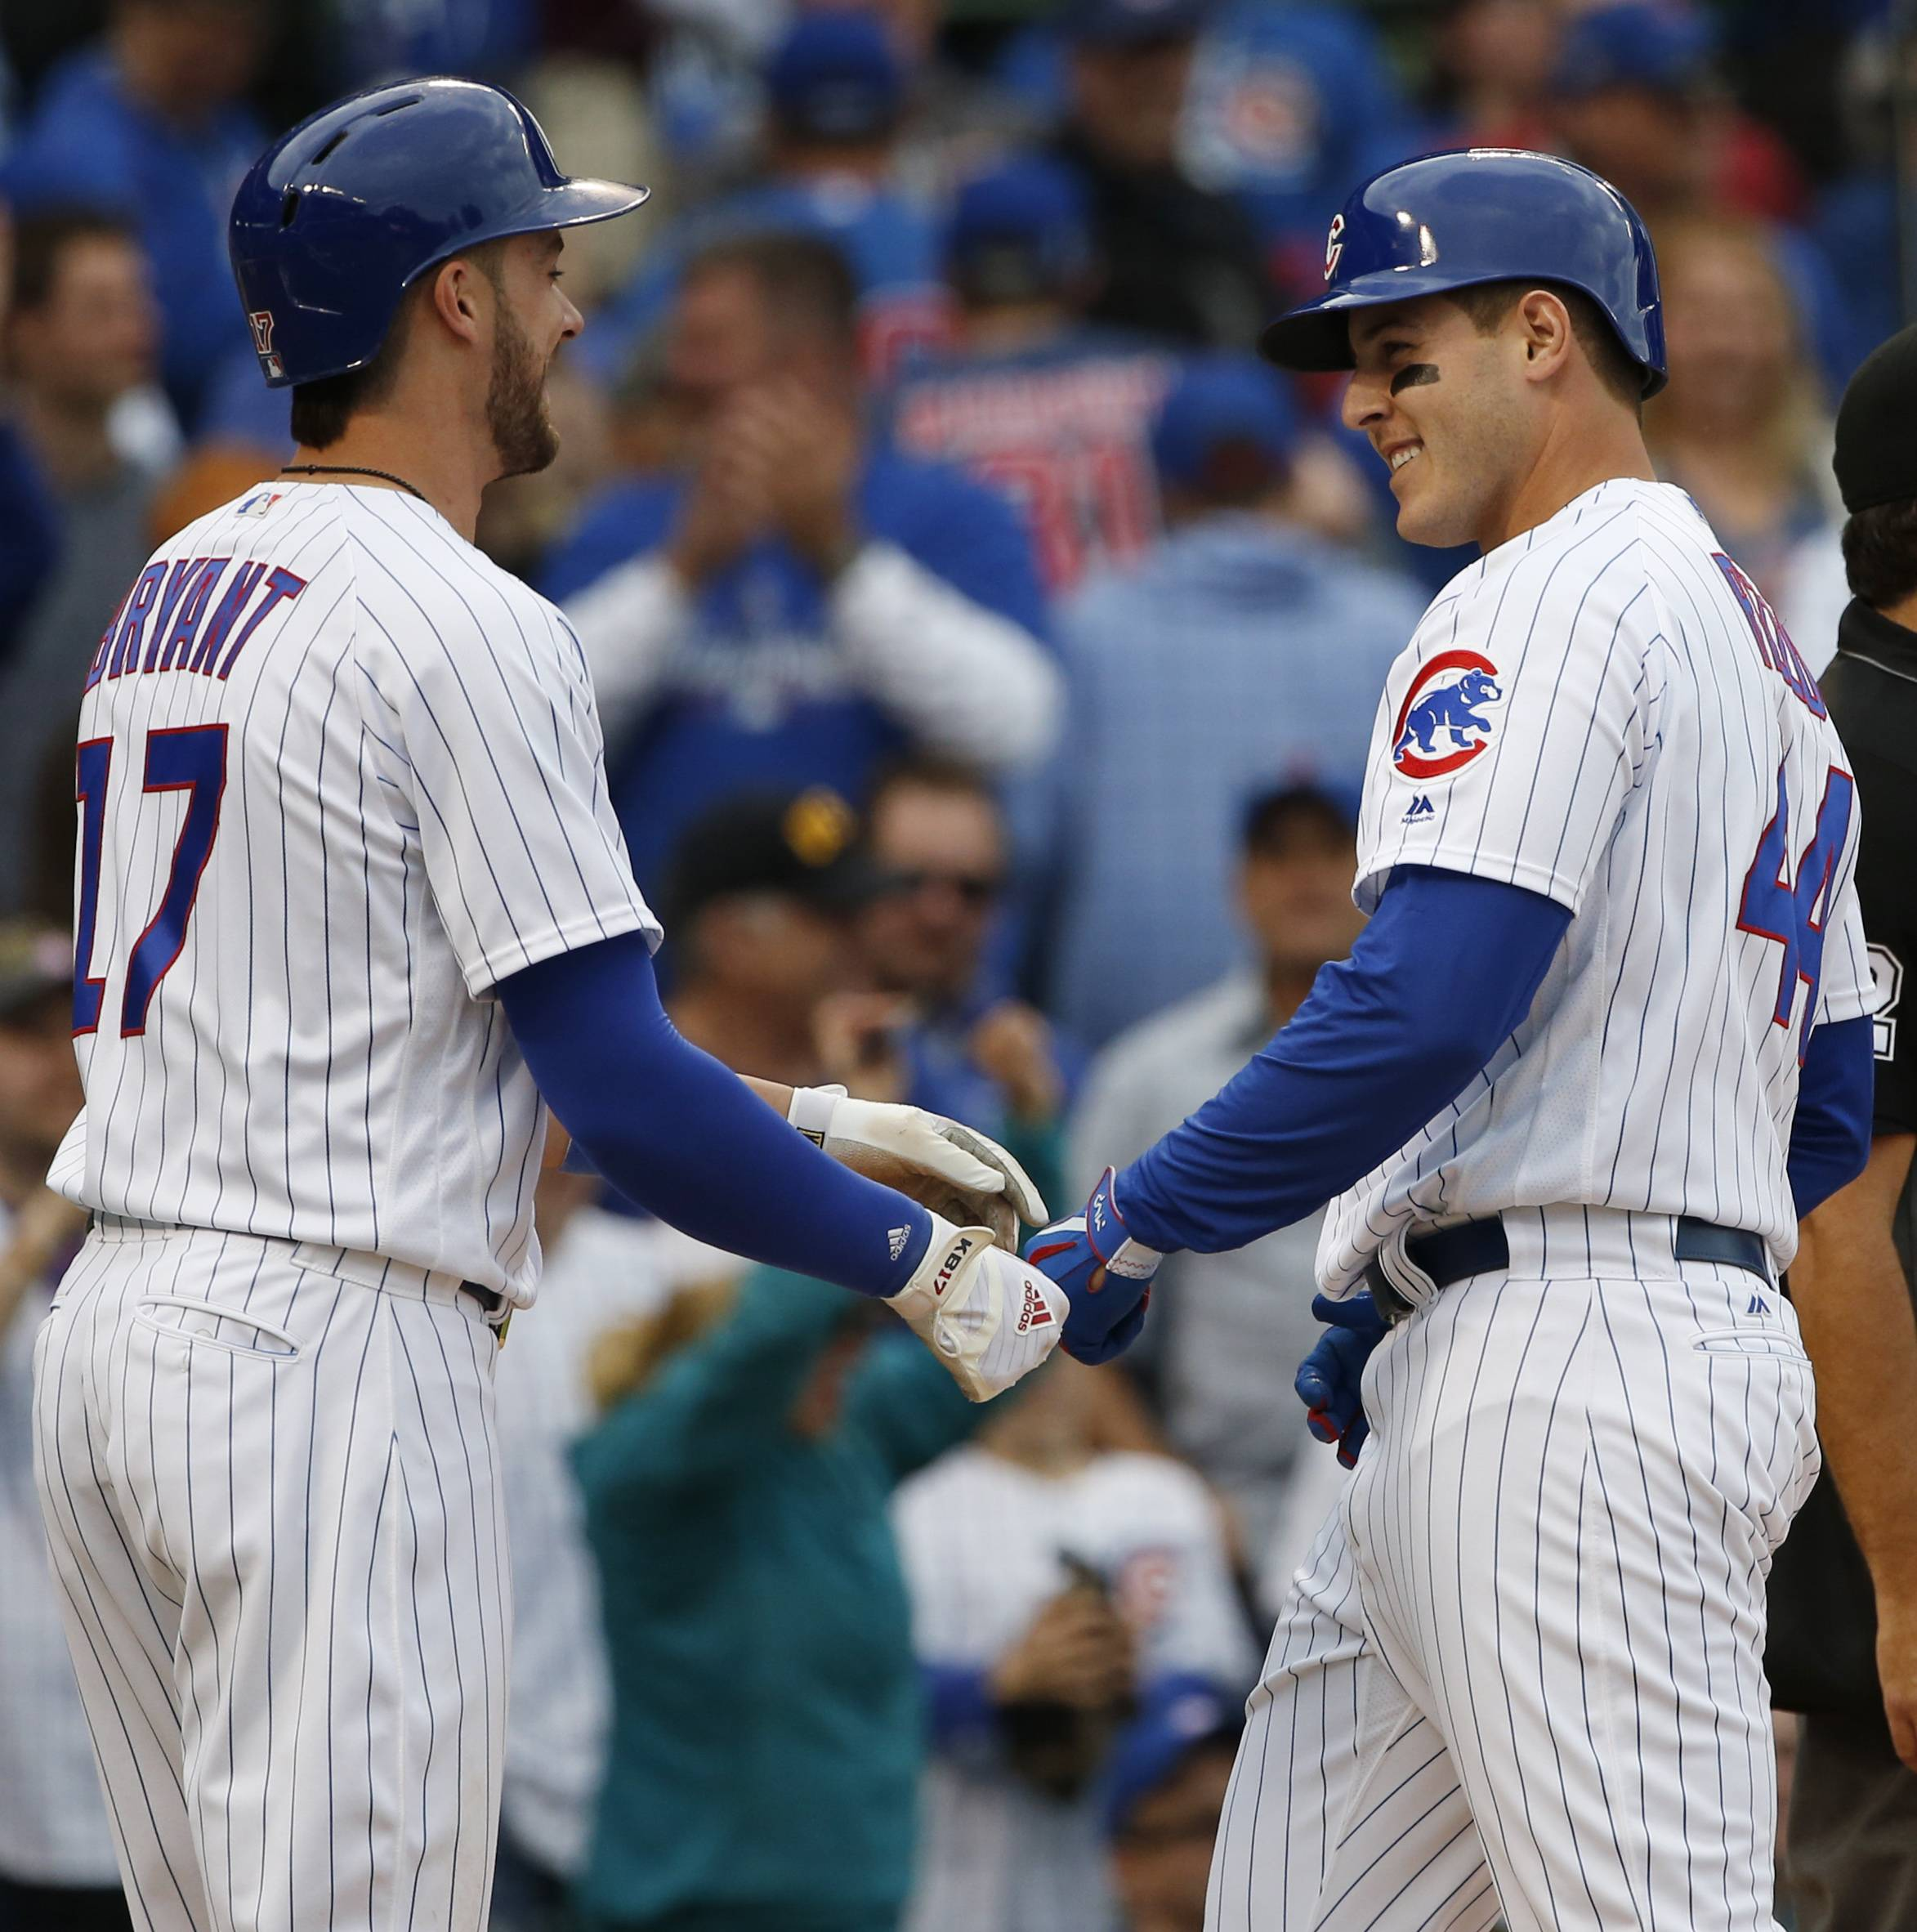 Chicago Cubs' Anthony Rizzo, right, celebrates with Kris Bryant after hitting a two-run home run against the Milwaukee Brewers in the eighth inning of a baseball game in Chicago, Sunday, May 21, 2017.